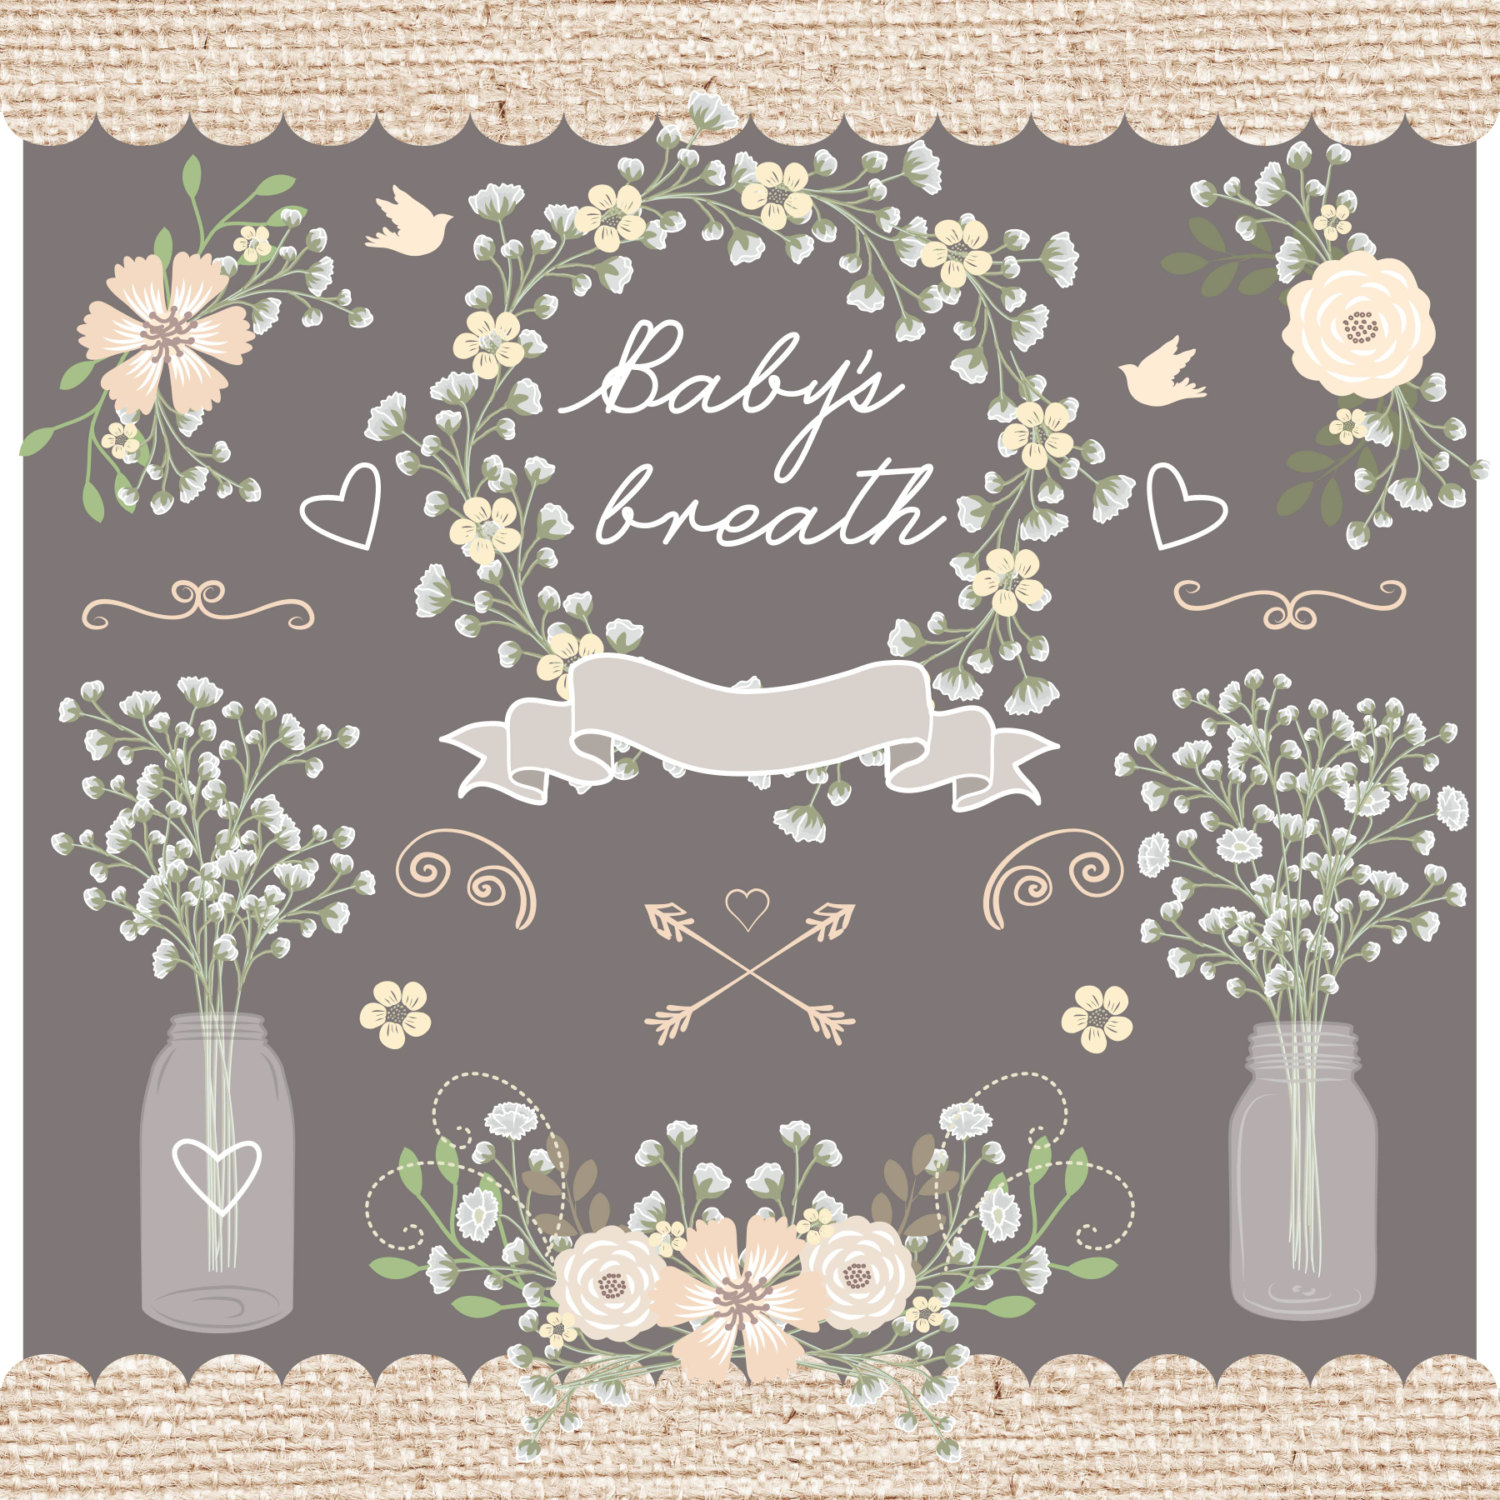 Baby's Breath clipart This baby's jar wedding clipart